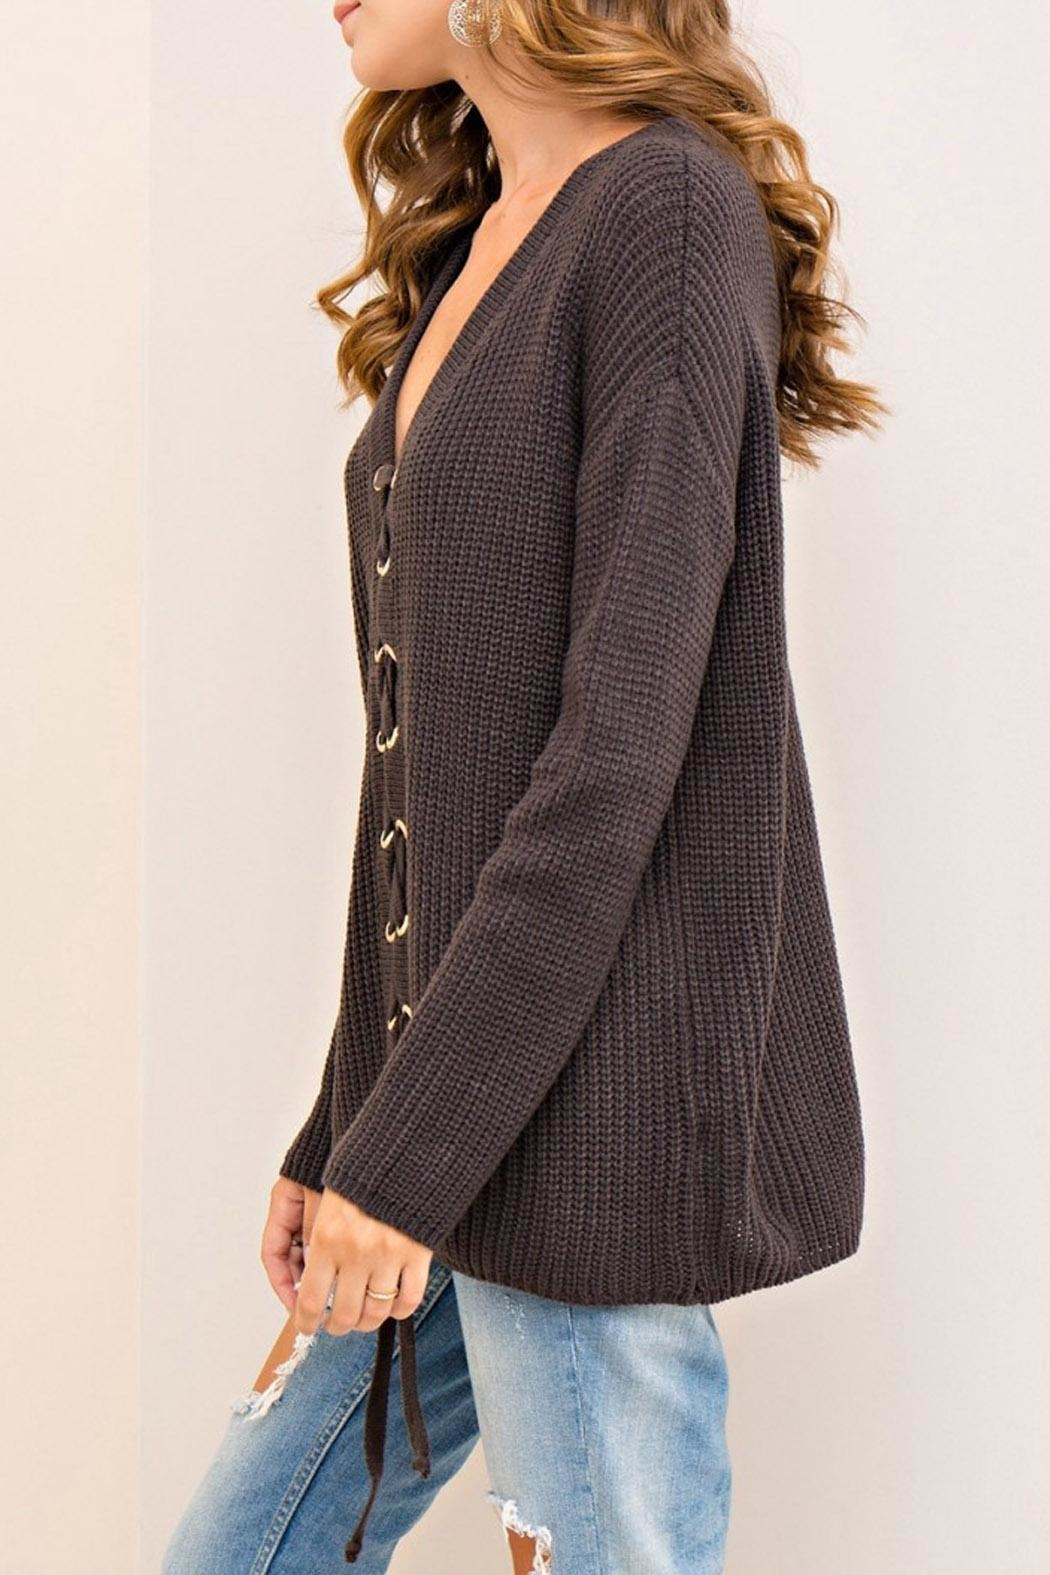 Entro Lace Up Sweater - Side Cropped Image